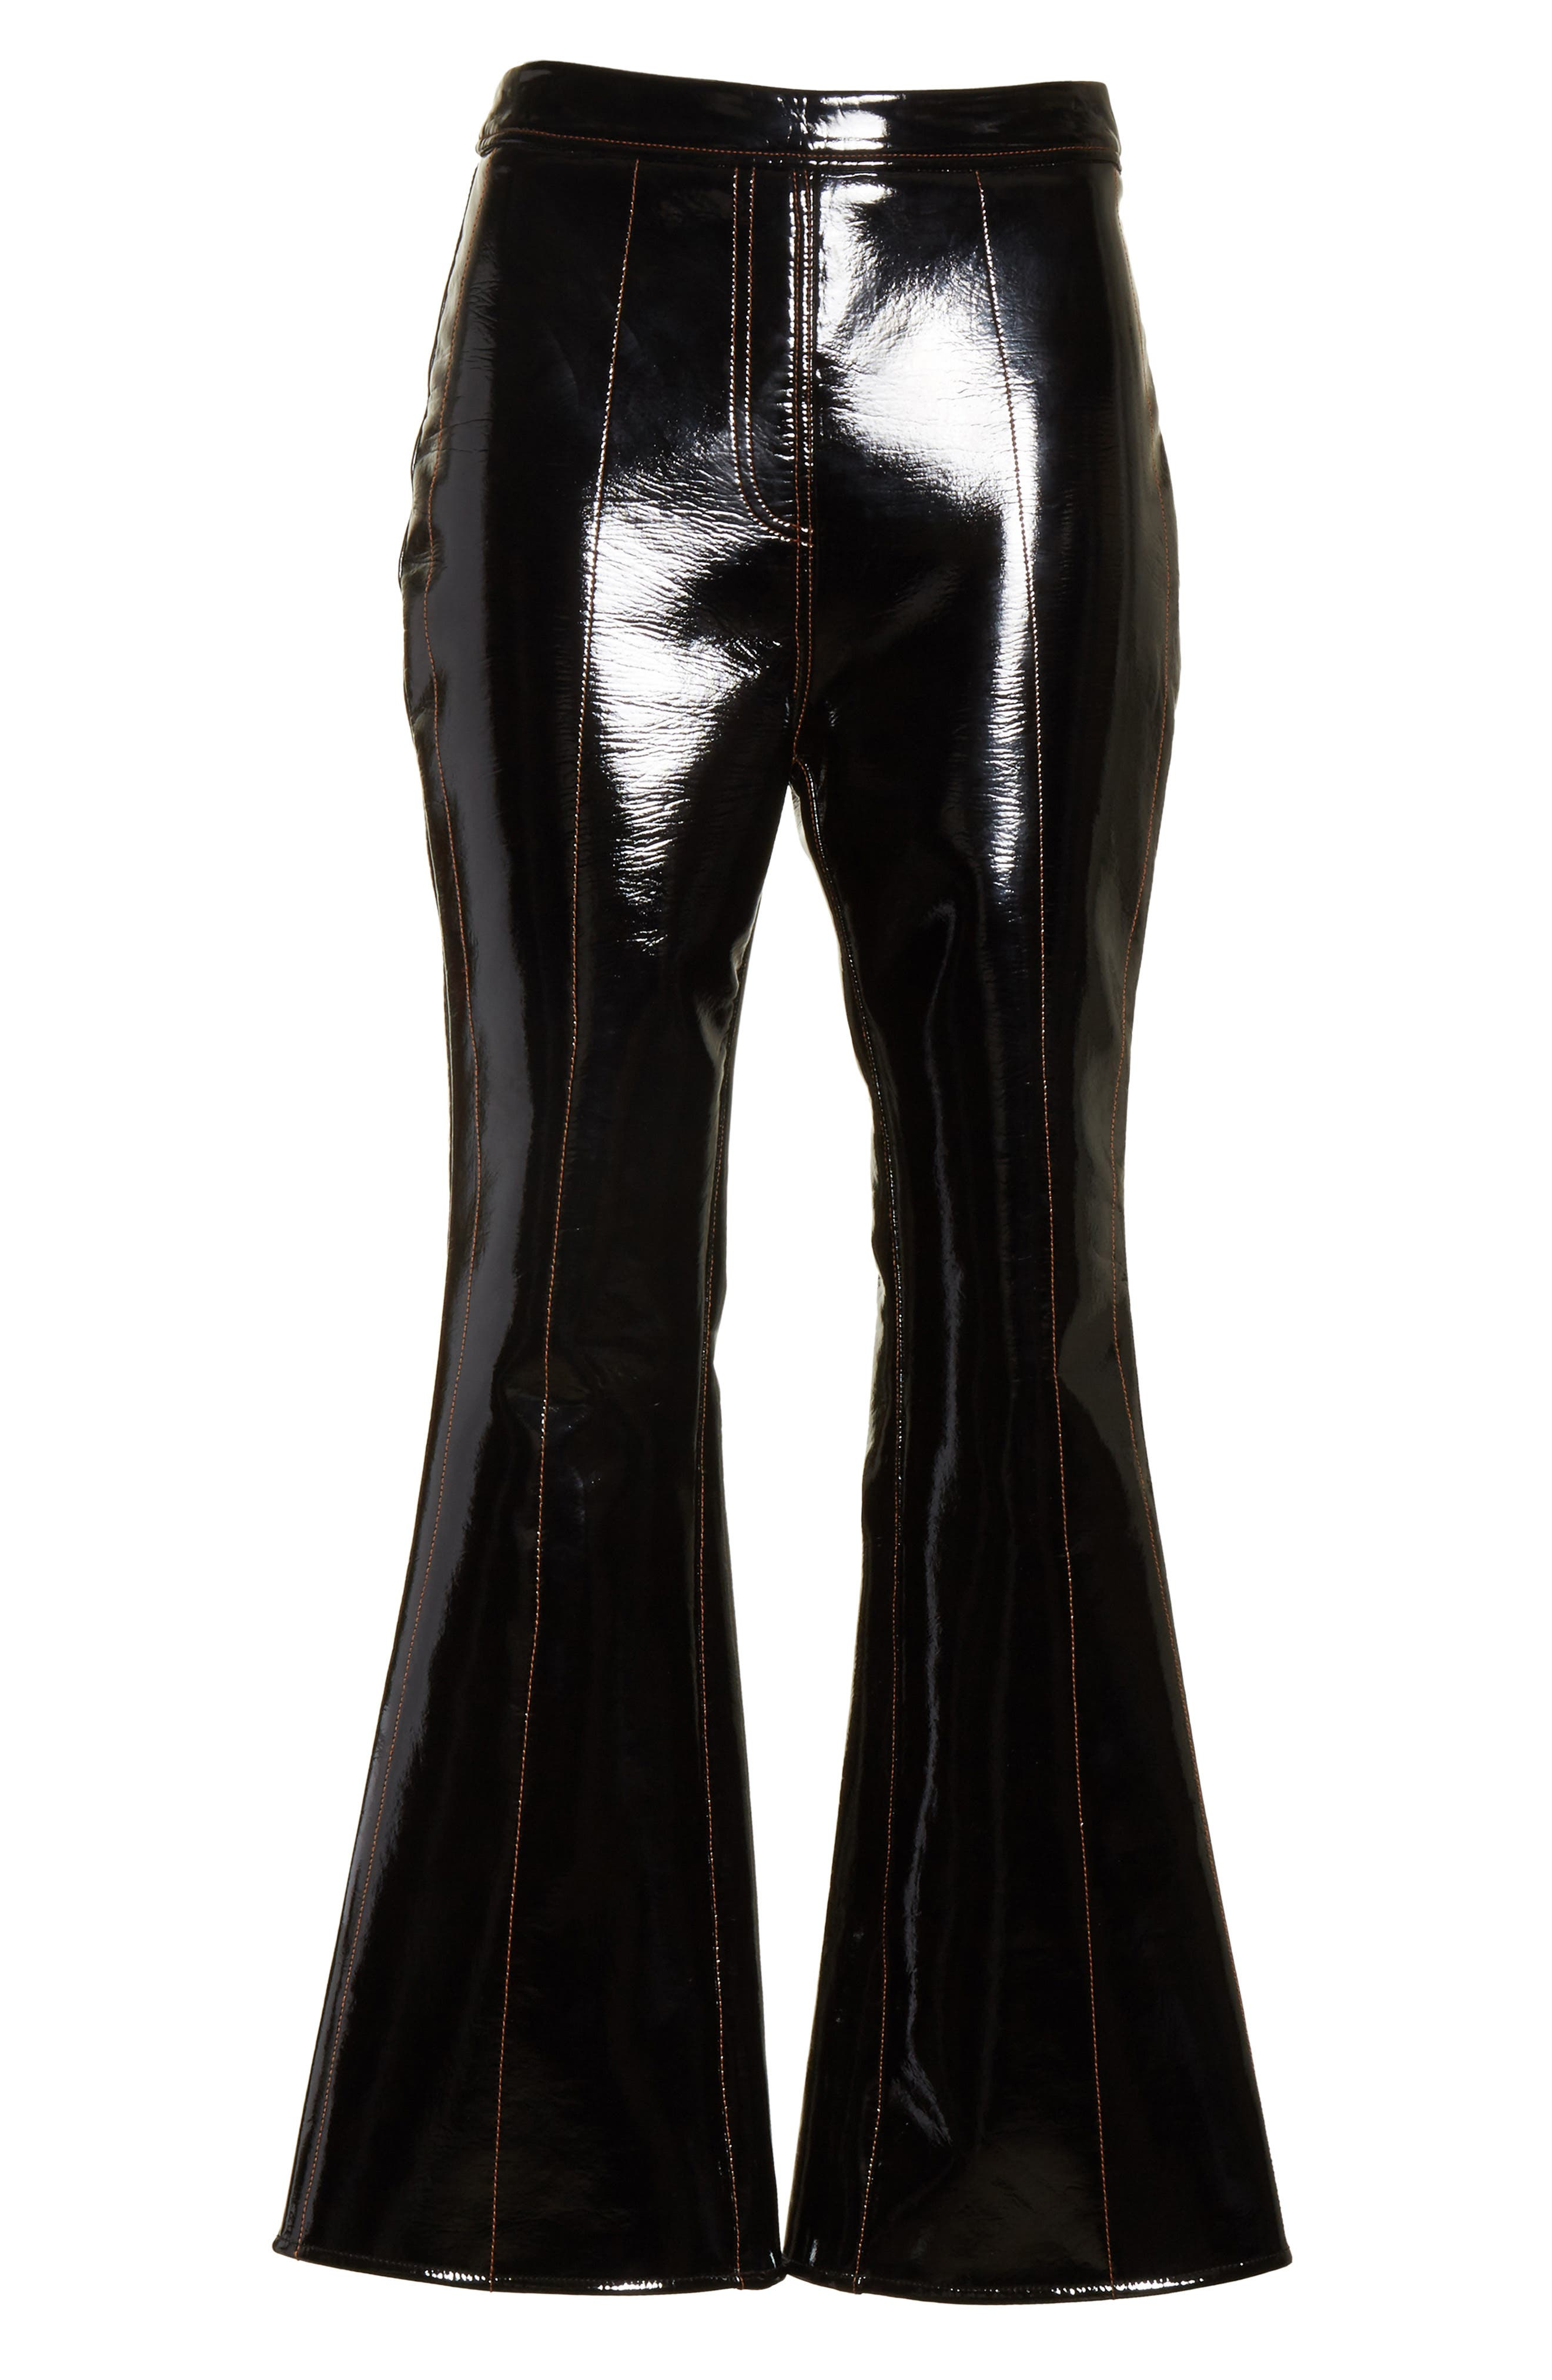 Outlaw Topstitched Crop Flare PVC Pants,                             Alternate thumbnail 6, color,                             001